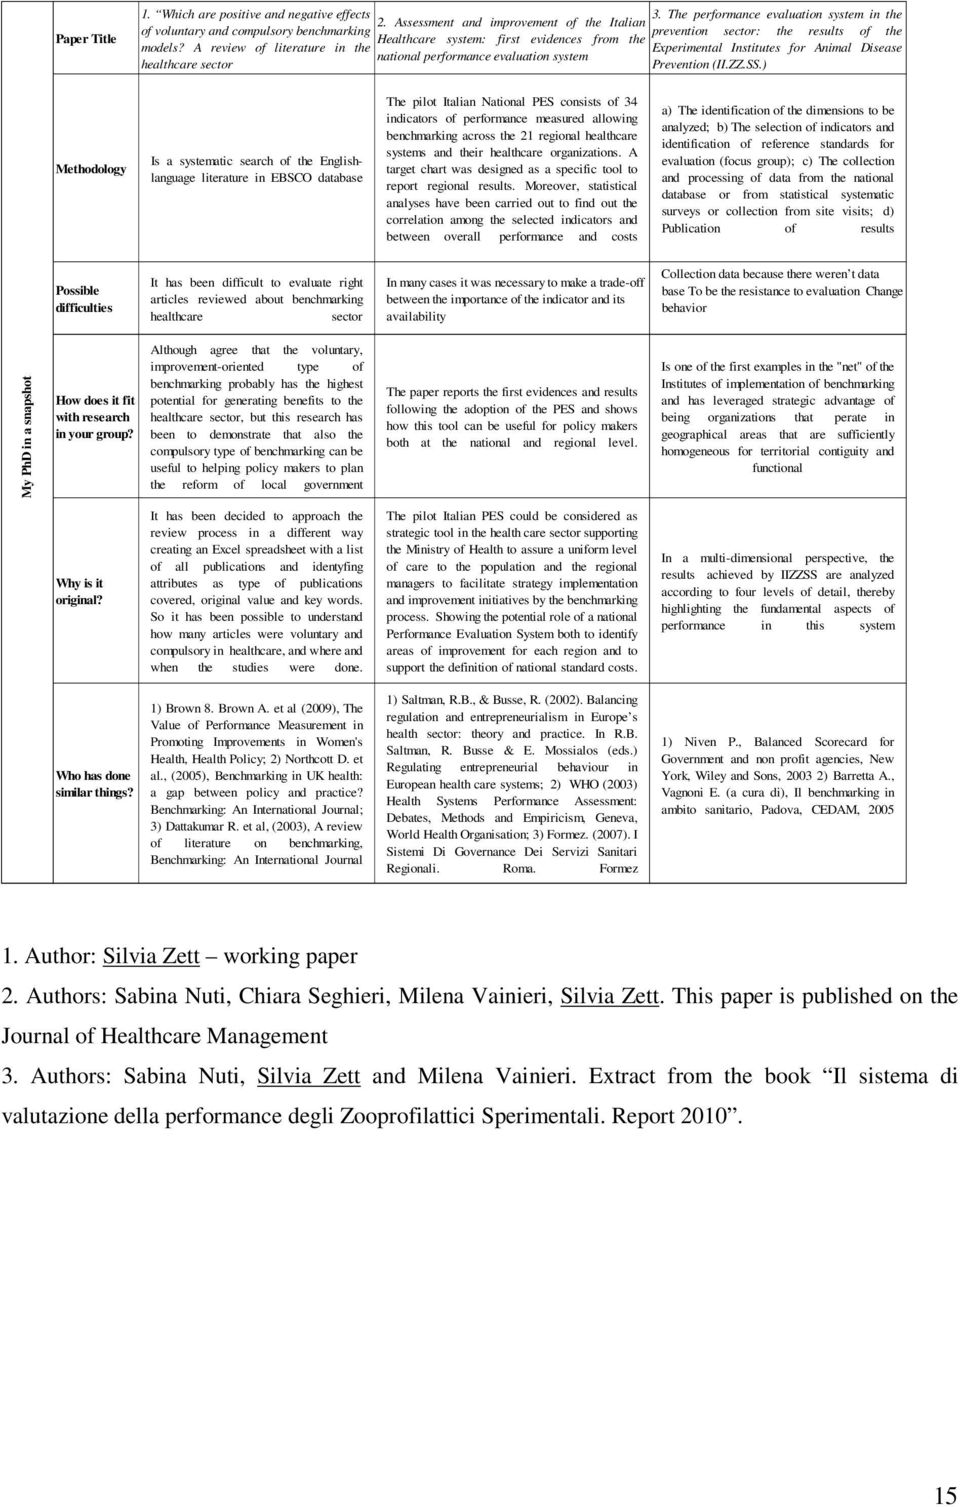 The performance evaluation system in the prevention sector: the results of the Experimental Institutes for Animal Disease Prevention (II.ZZ.SS.